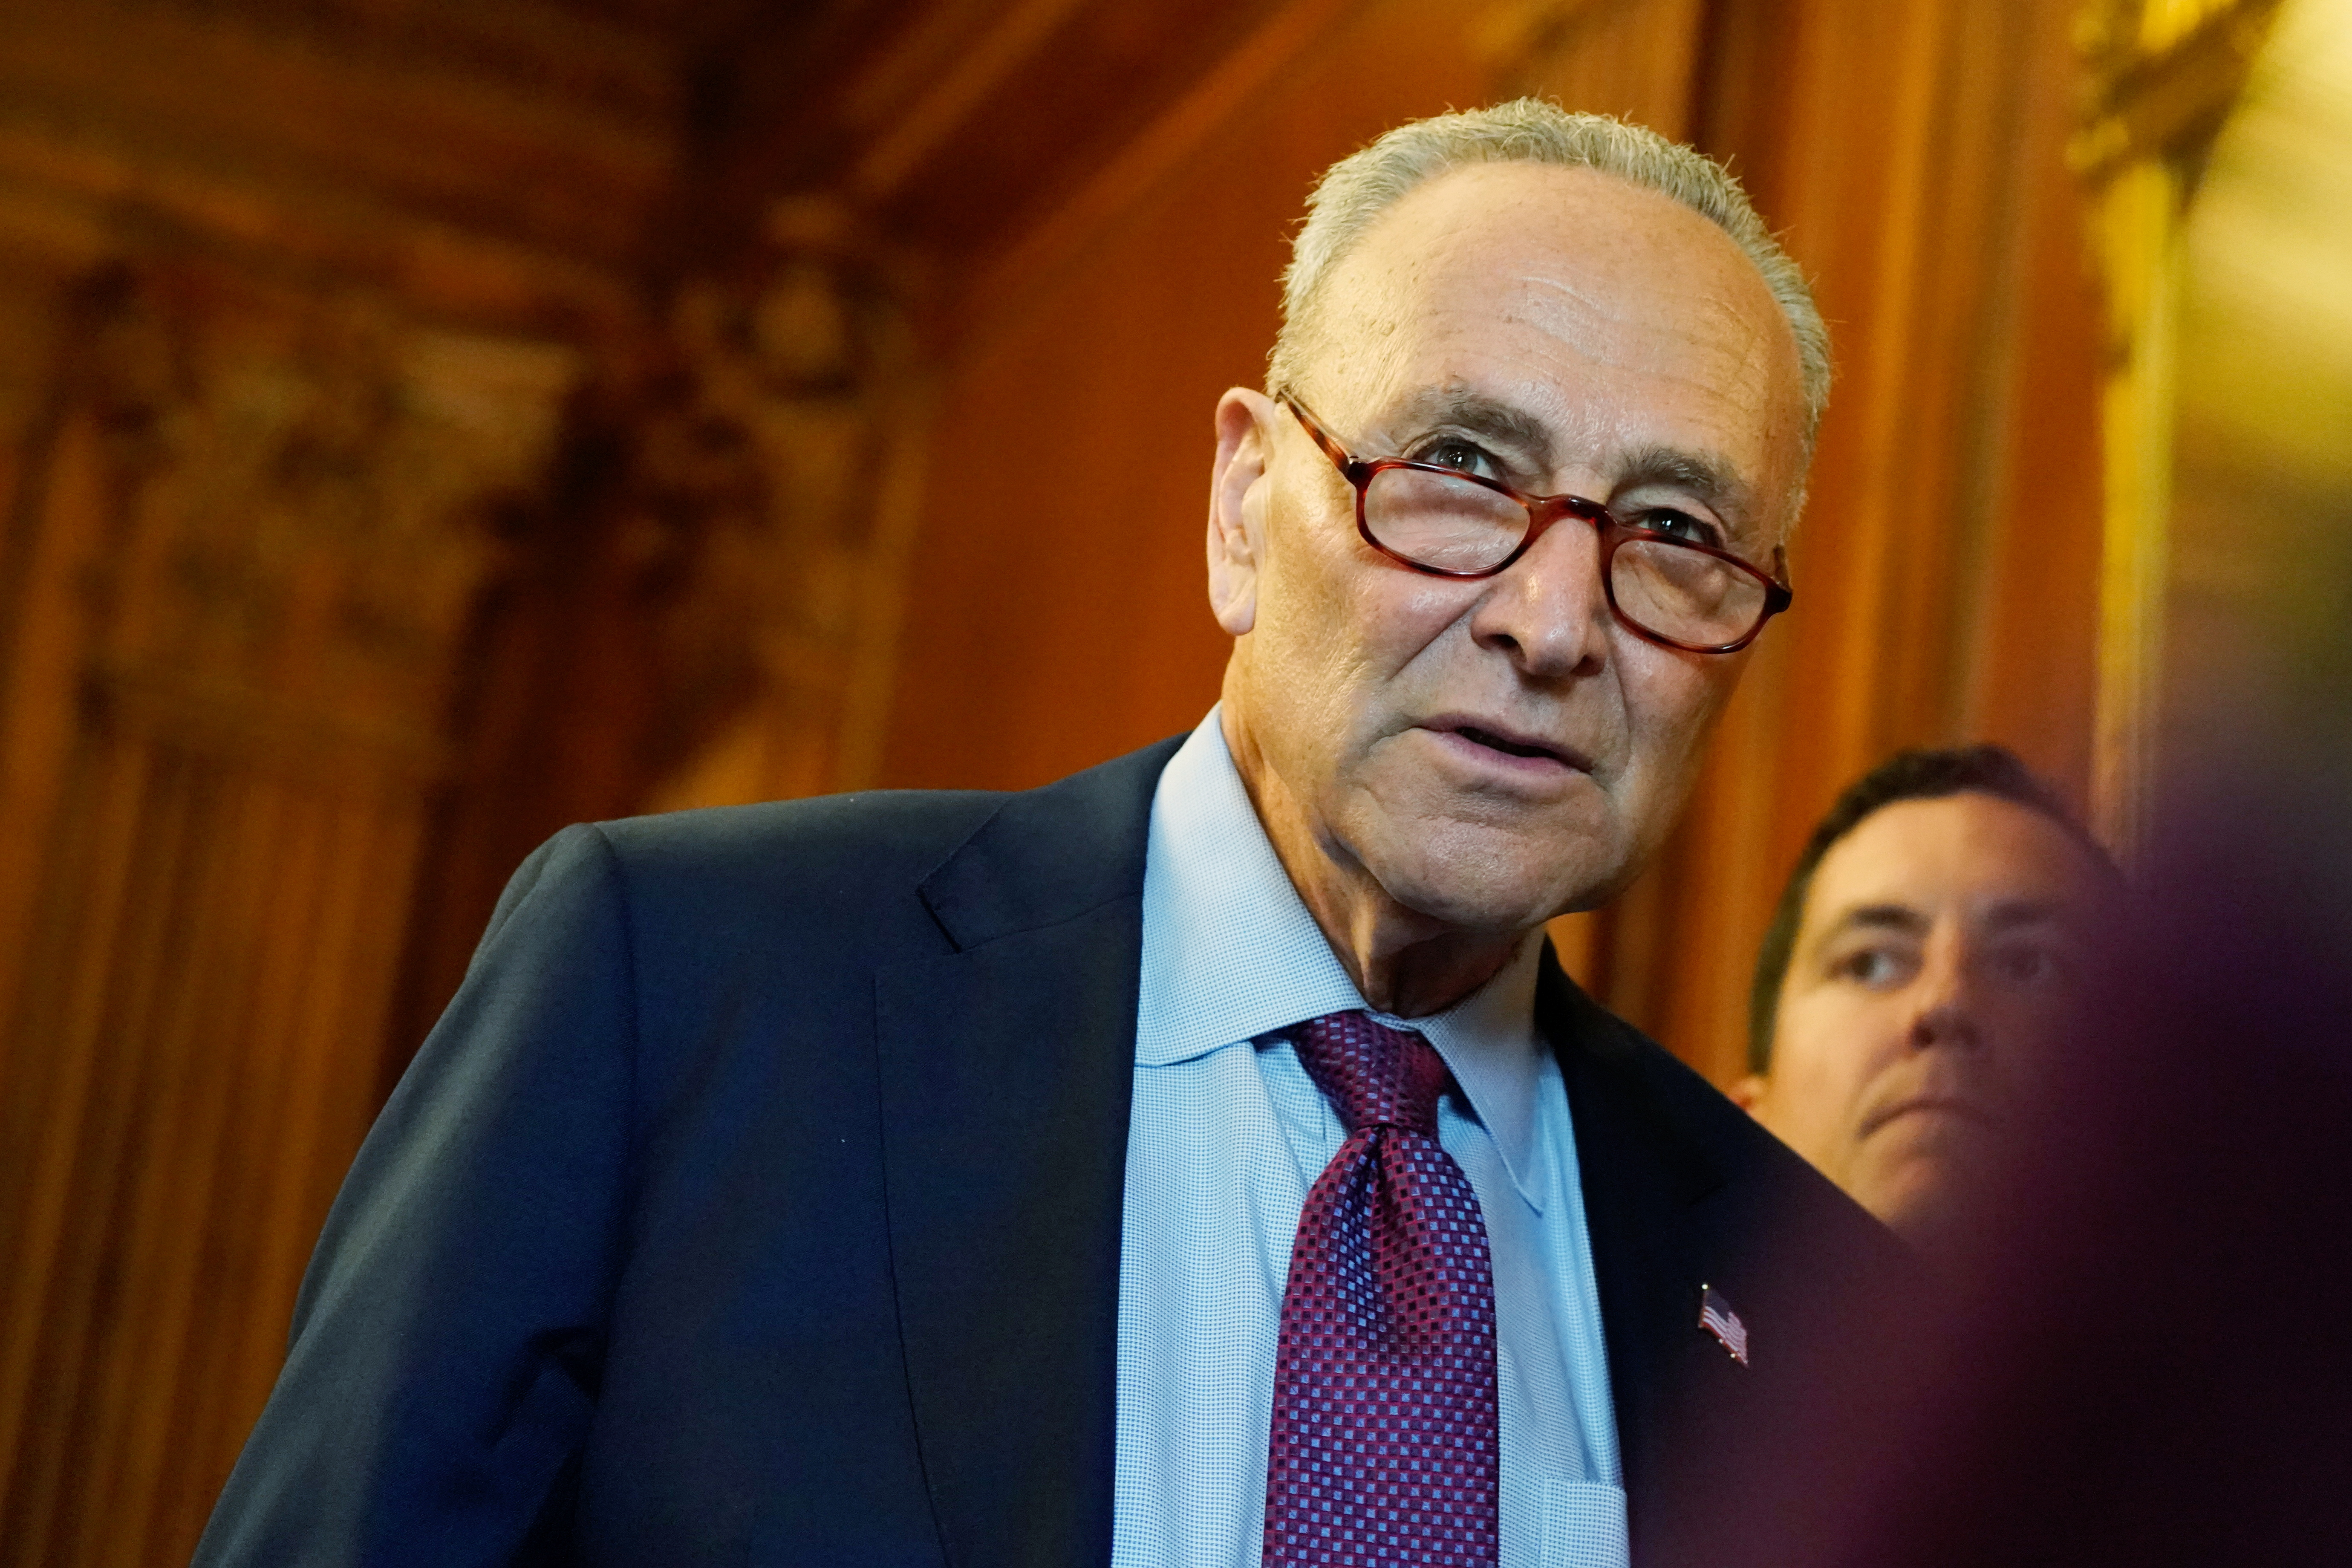 U.S. Senate Majority Leader Chuck Schumer attends a news conference with mothers helped by Child Tax Credit payments at the U.S. Capitol in Washington, U.S., July 20, 2021. REUTERS/Elizabeth Frantz